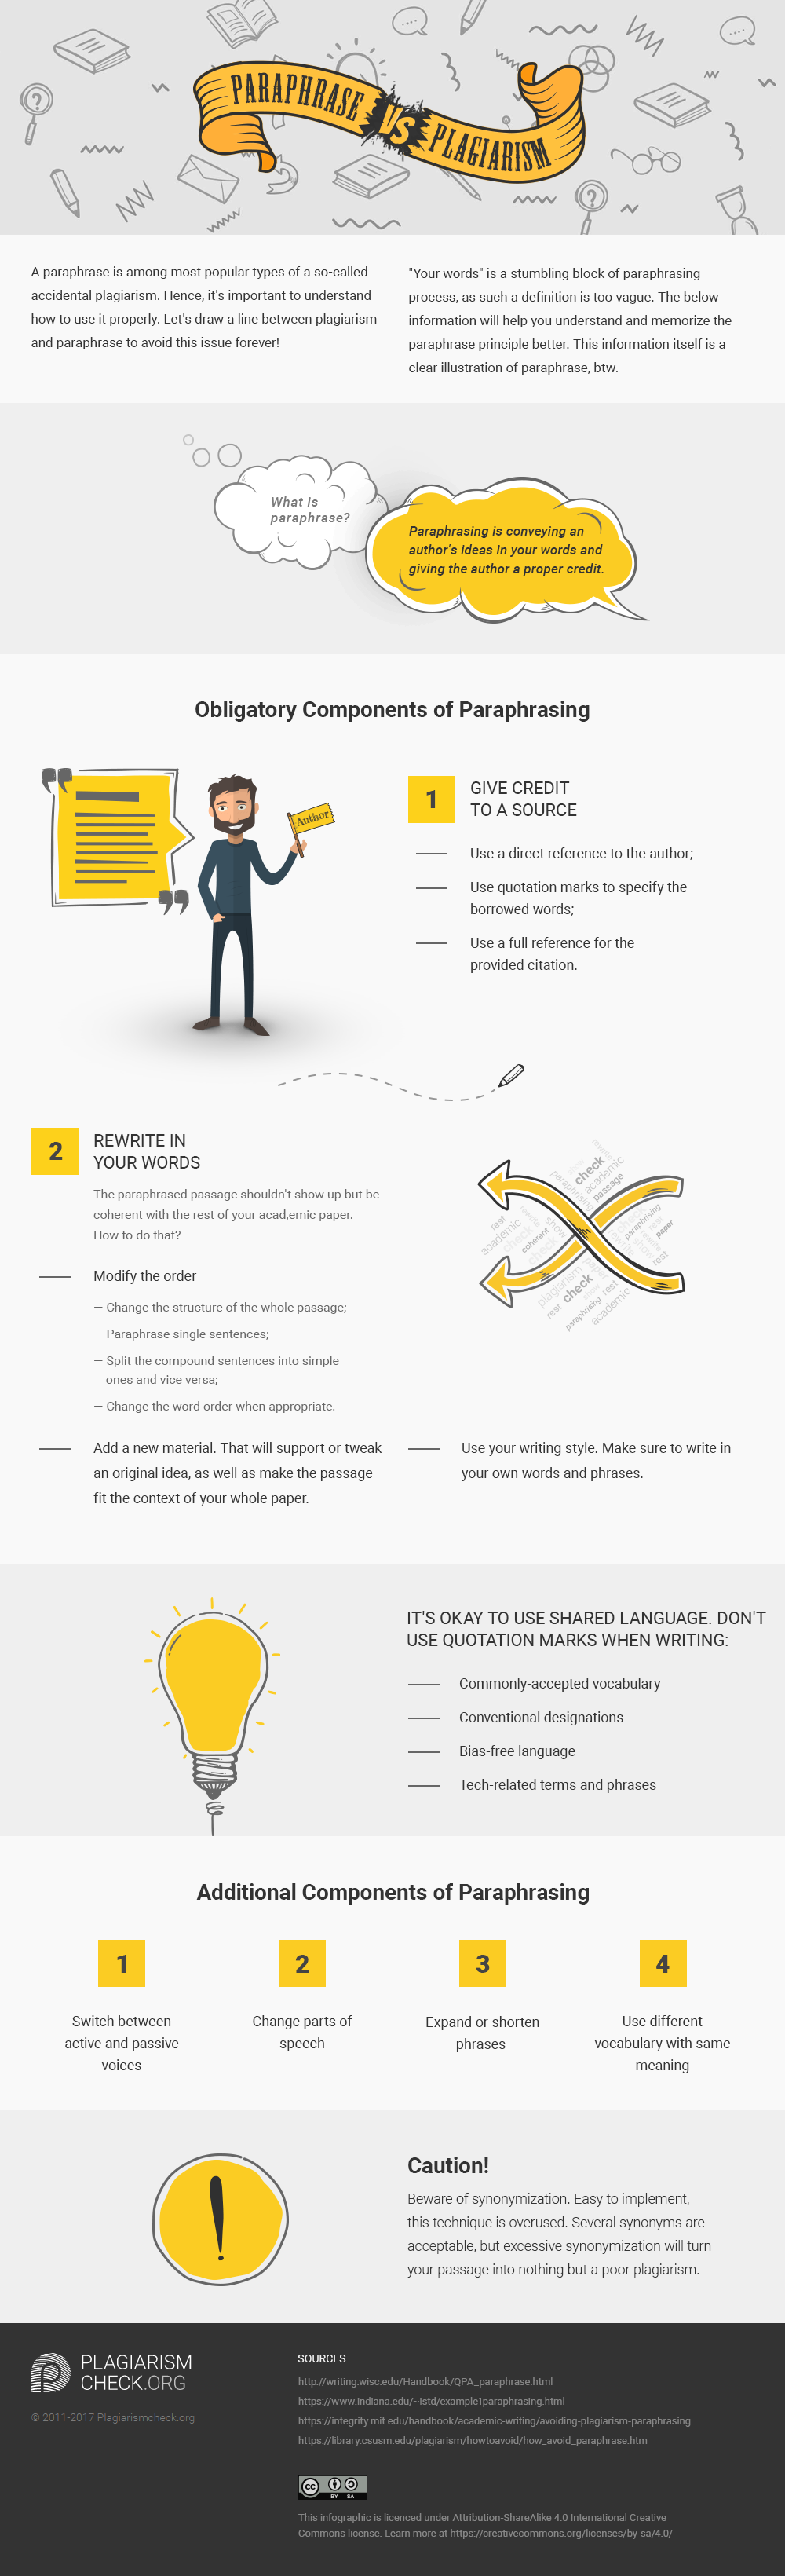 How To Avoid Paraphrase Plagiarism Infographic Educational Information Literacy Don T Plagiarize